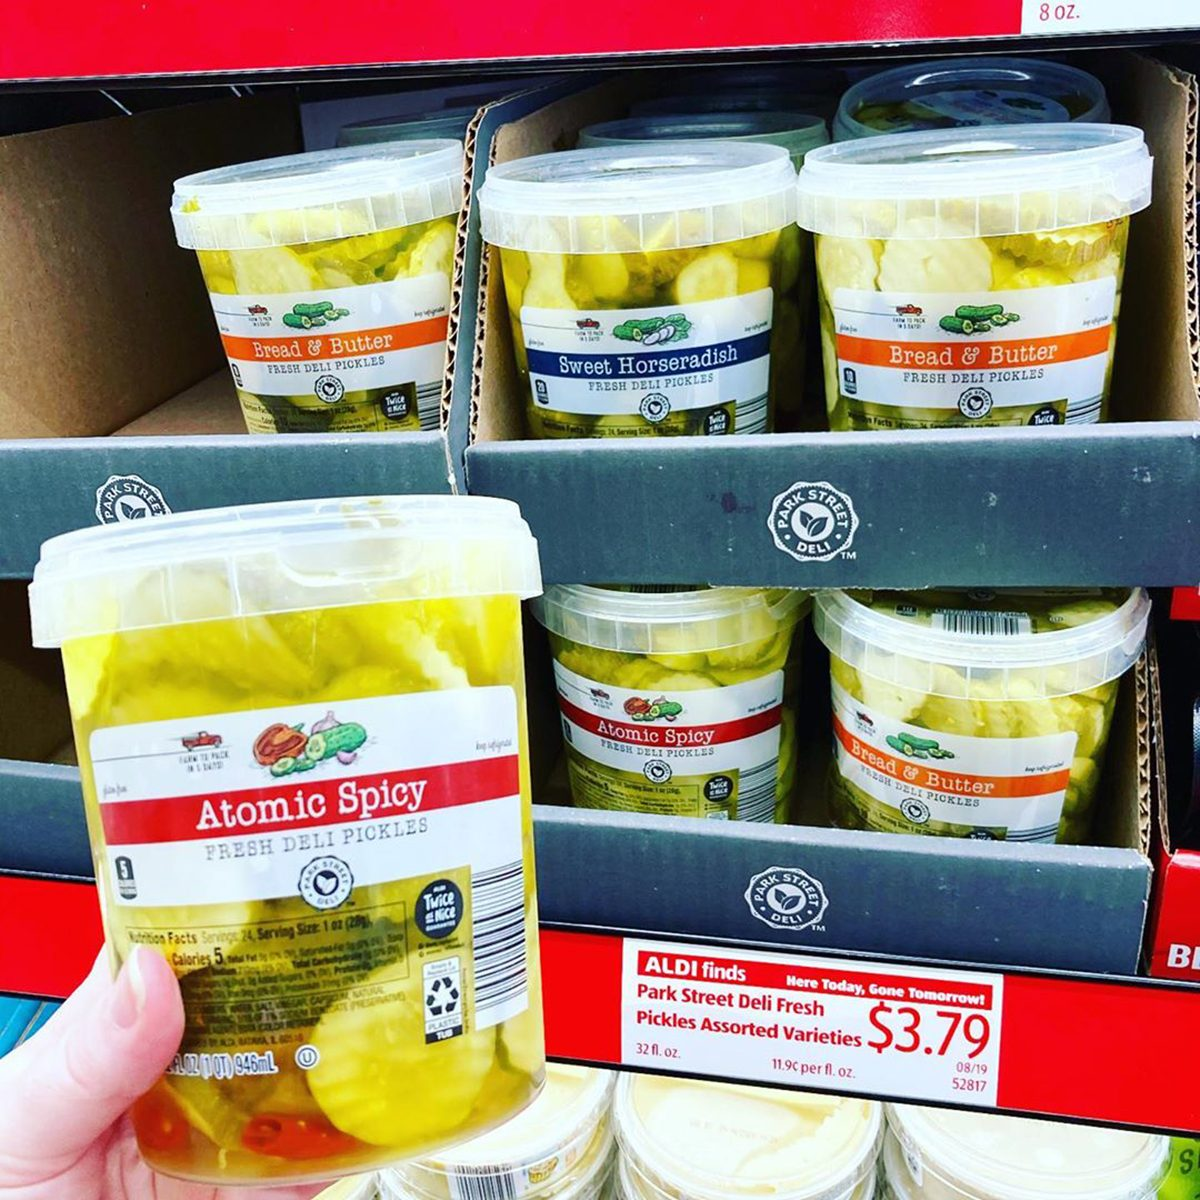 Aldi Park Street pickles in Atomic Spicy, Sweet Horseradish, and Bread & Butter